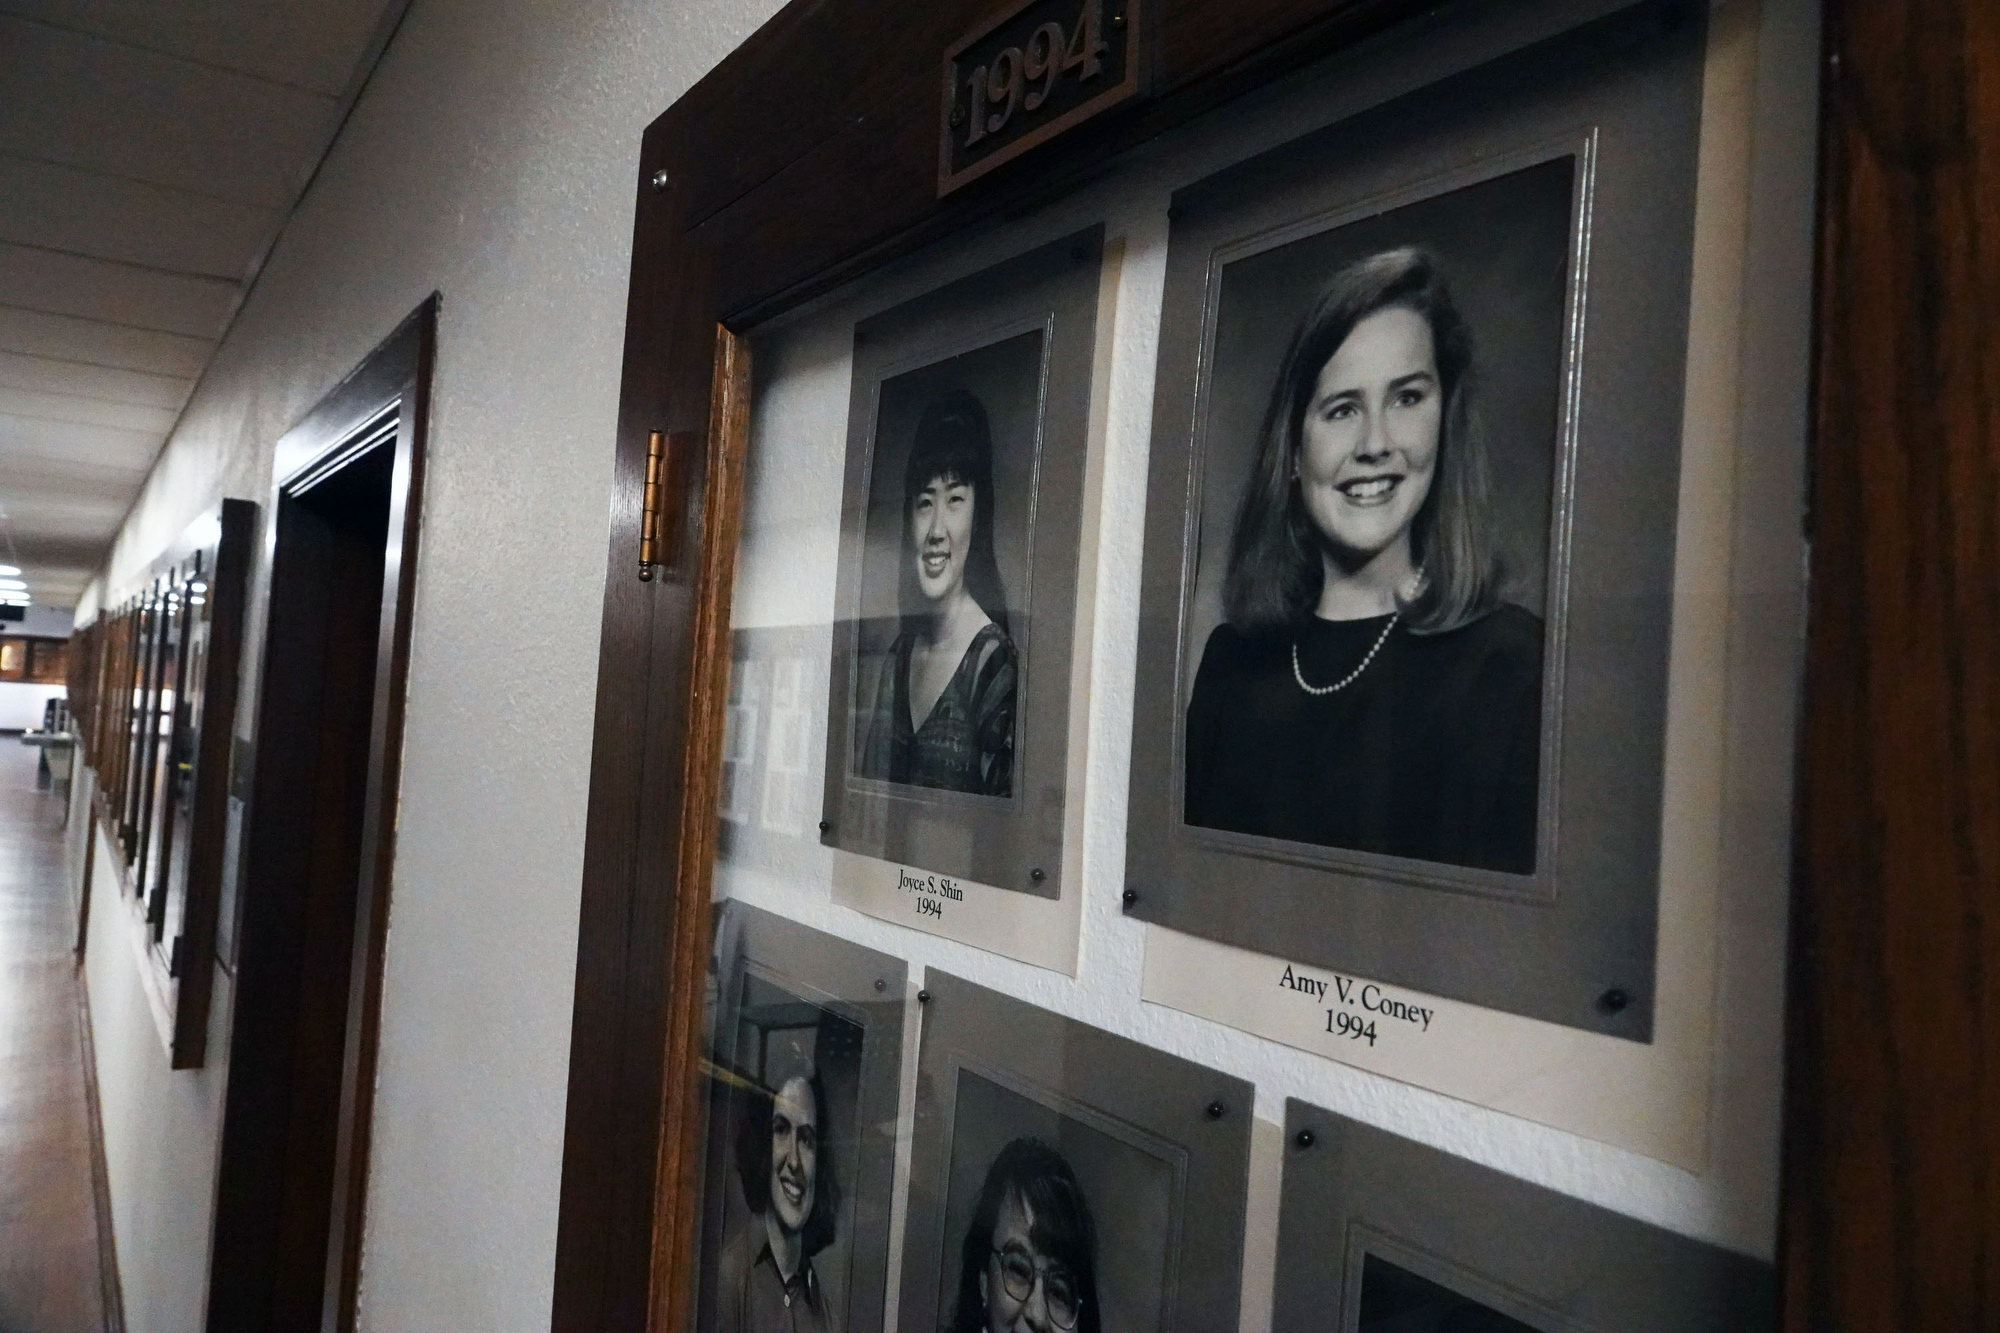 A photo of Rhodes College graduate Amy Coney Barrett, (right) who is one of the top choices to replace the late Ruth Bader Ginsburg on the U.S. Supreme Court, hangs in the school's Hall of Fame on September 22,2020. Rhodes College is in Memphis, Tennessee. As a member of the Rhodes College Class of 1994, Coney Barrett graduated magna cum laude and Phi Beta Kappa with a Bachelor of Arts in English. While at Rhodes, she was elected to the Honor Council and to the Student Hall of Fame. She has gone on to a career of professional distinction and achievement. (Photo: © Karen Pulfer Focht)